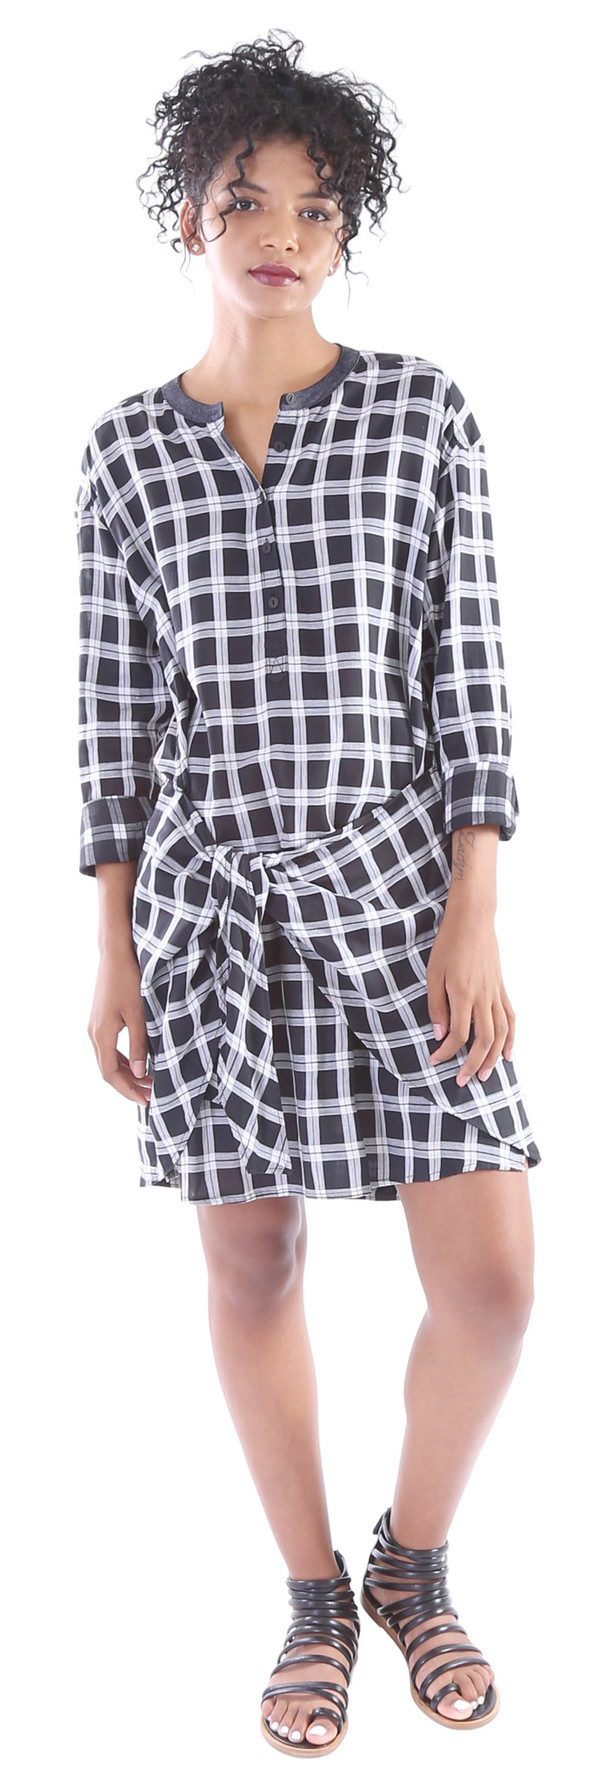 Rag & Bone Tie Dress